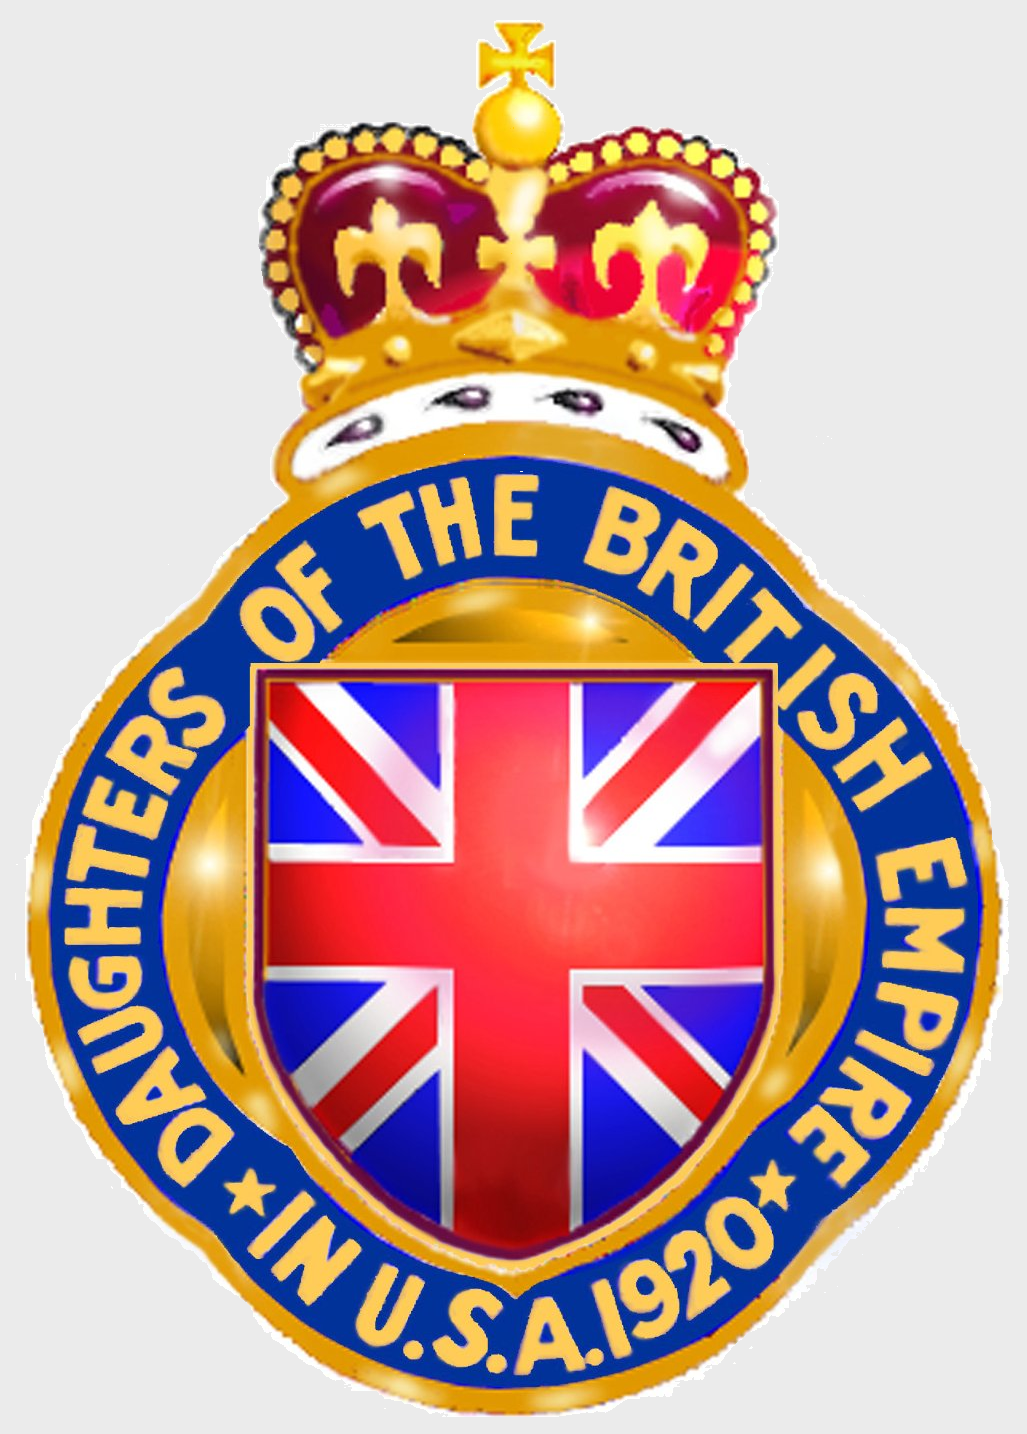 The Daughters of the British Empire in Ohio